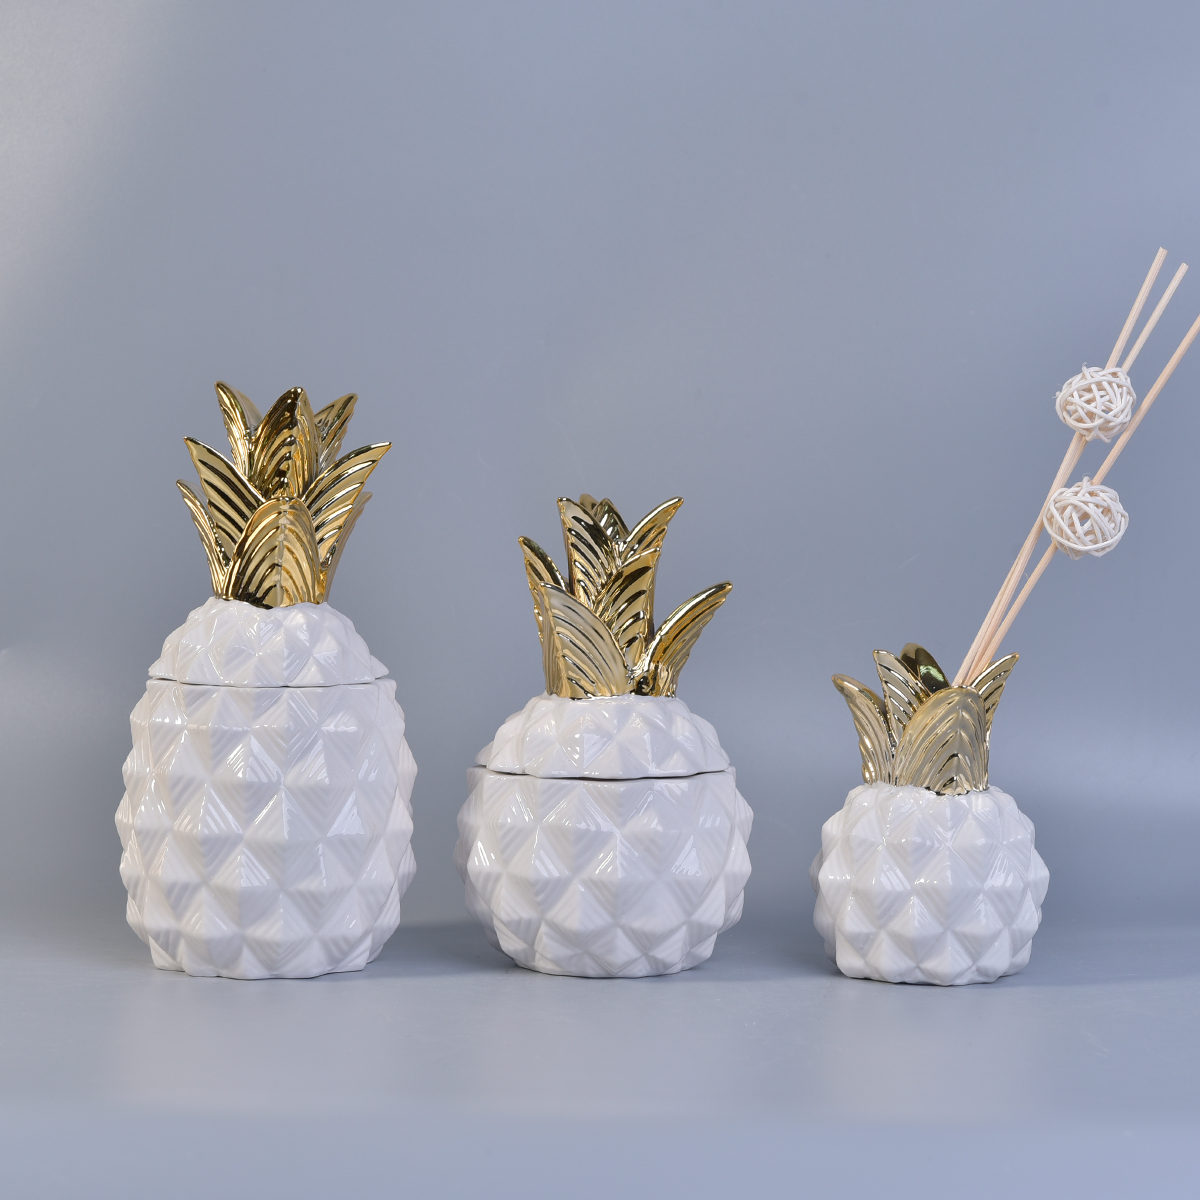 Pineapple ceramic candle vessel serious